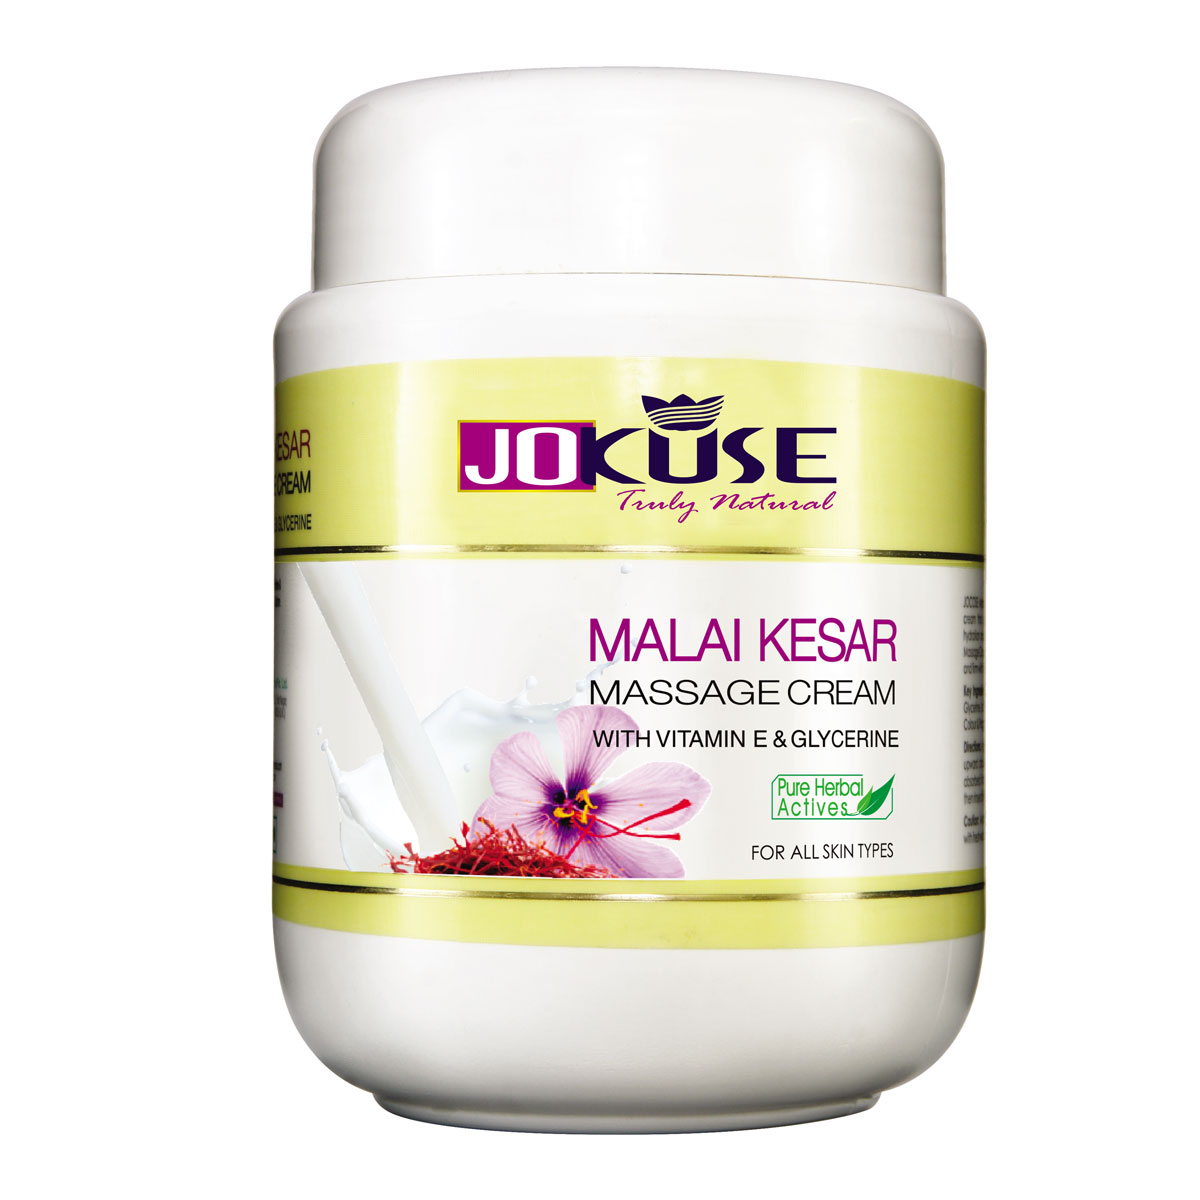 MALAI KESHAR MASSAGE